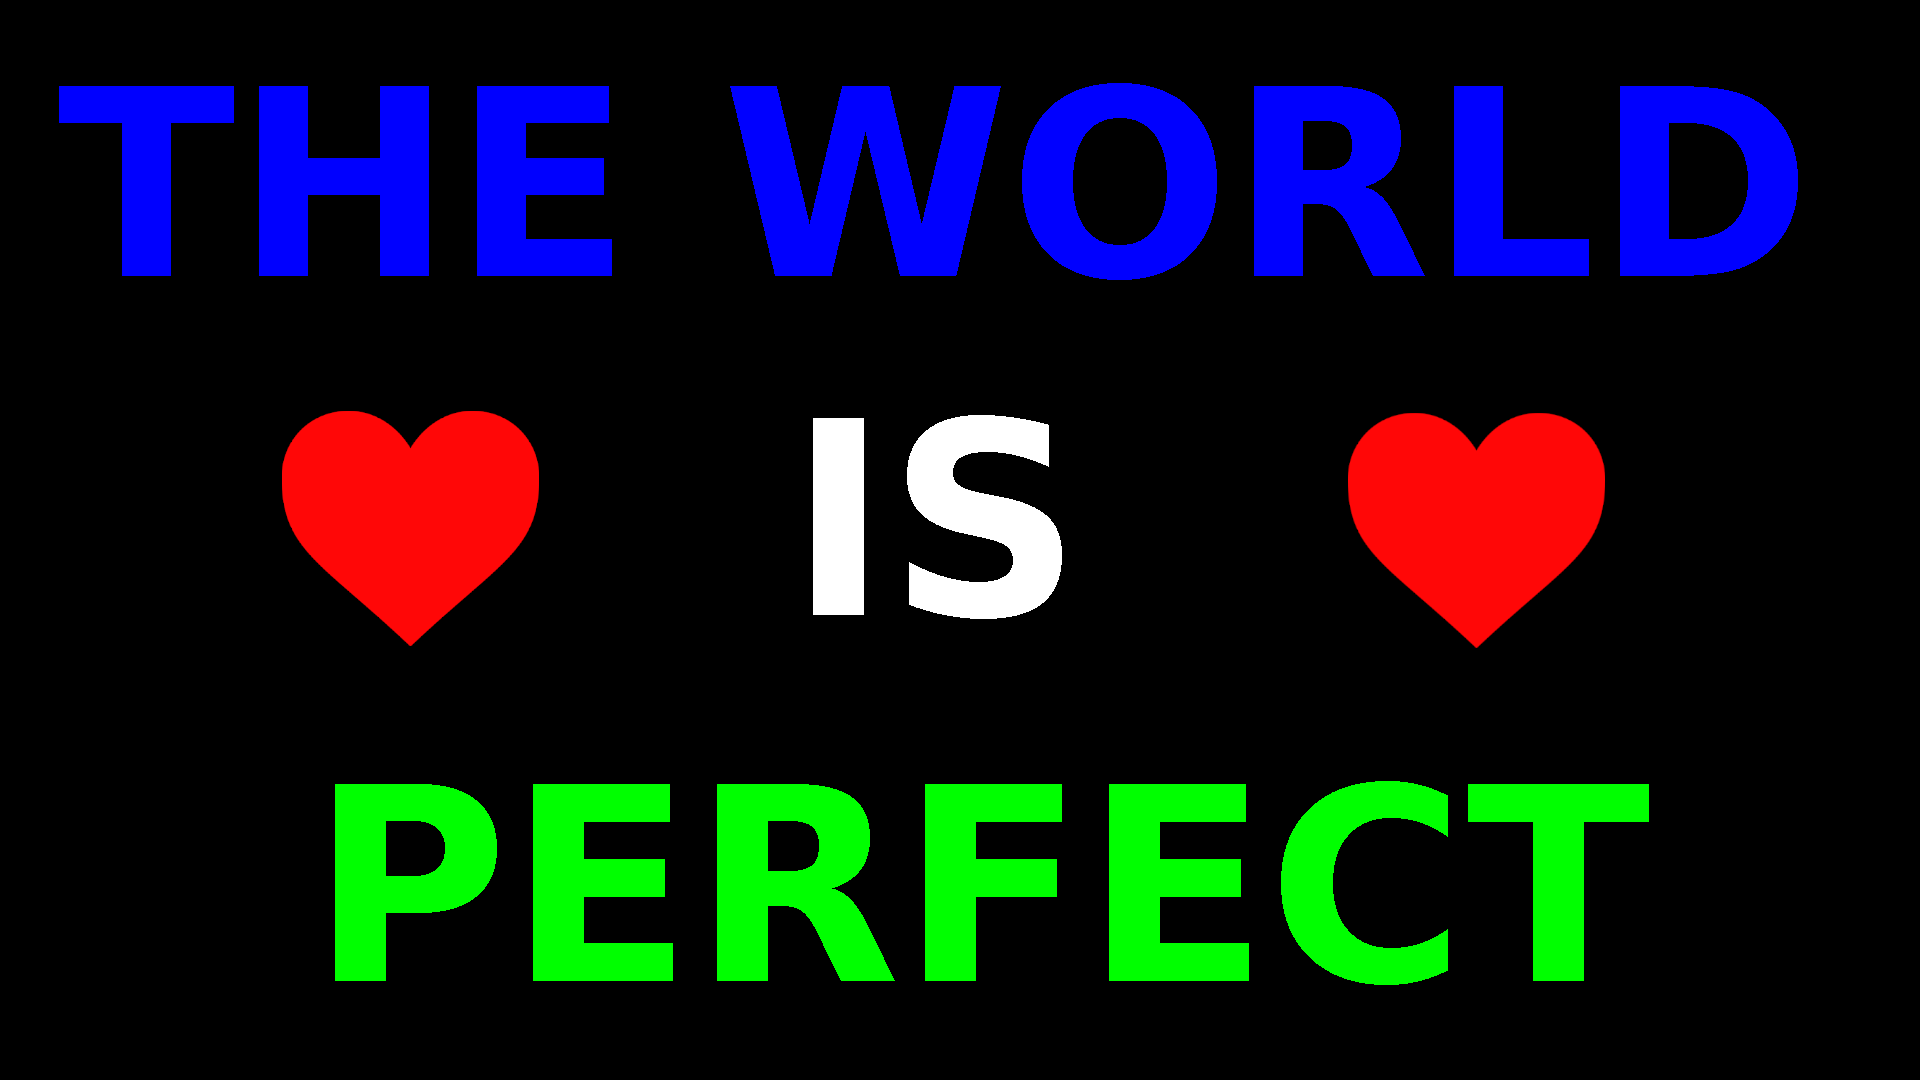 The world is perfect